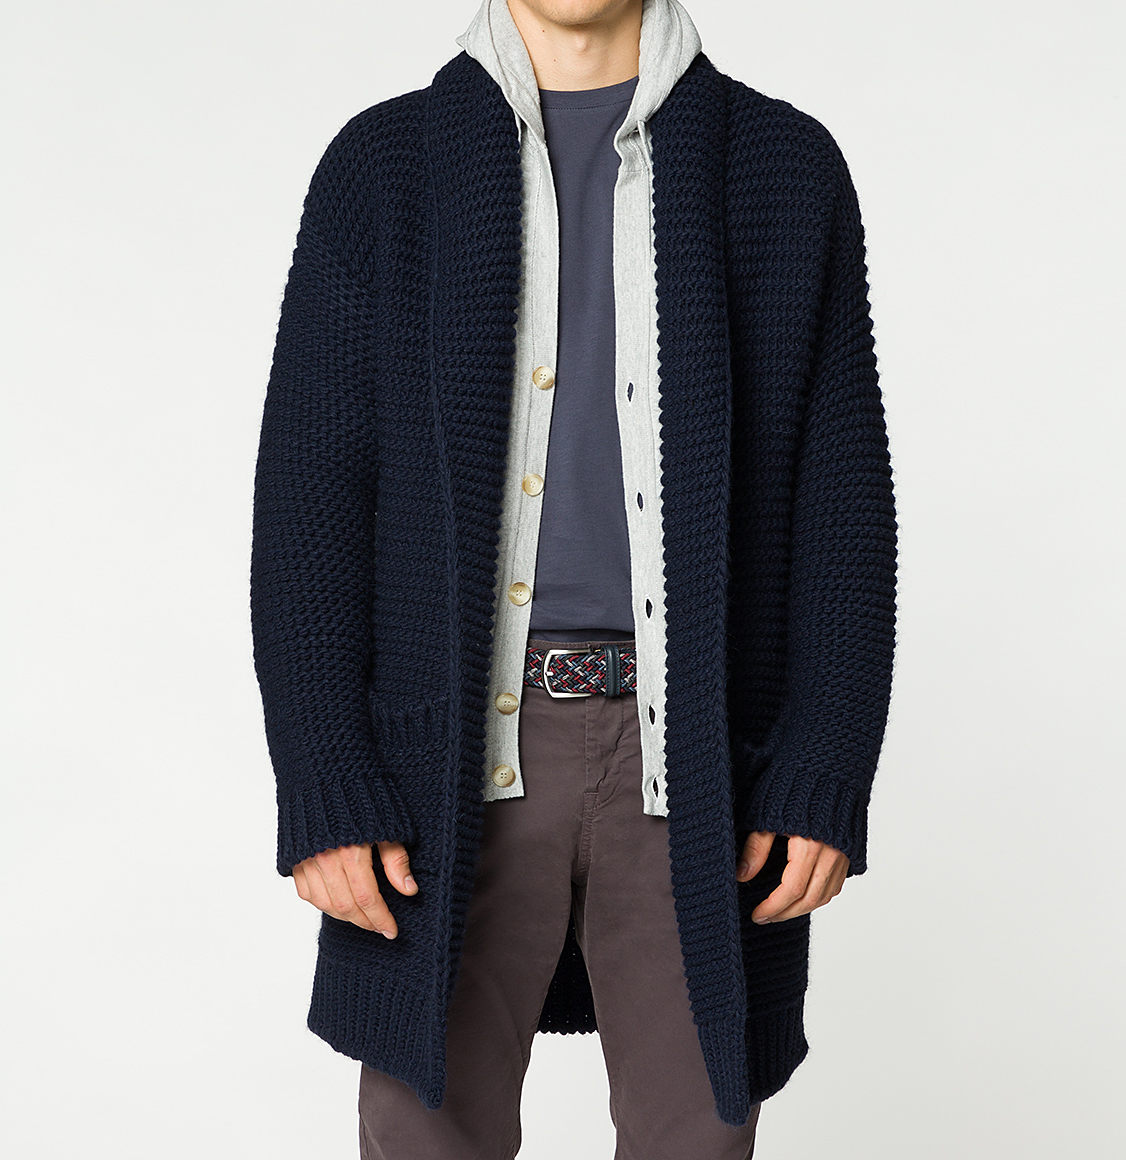 Oversized Shawl Collar Wool Blend Cardigan Midnight Blue